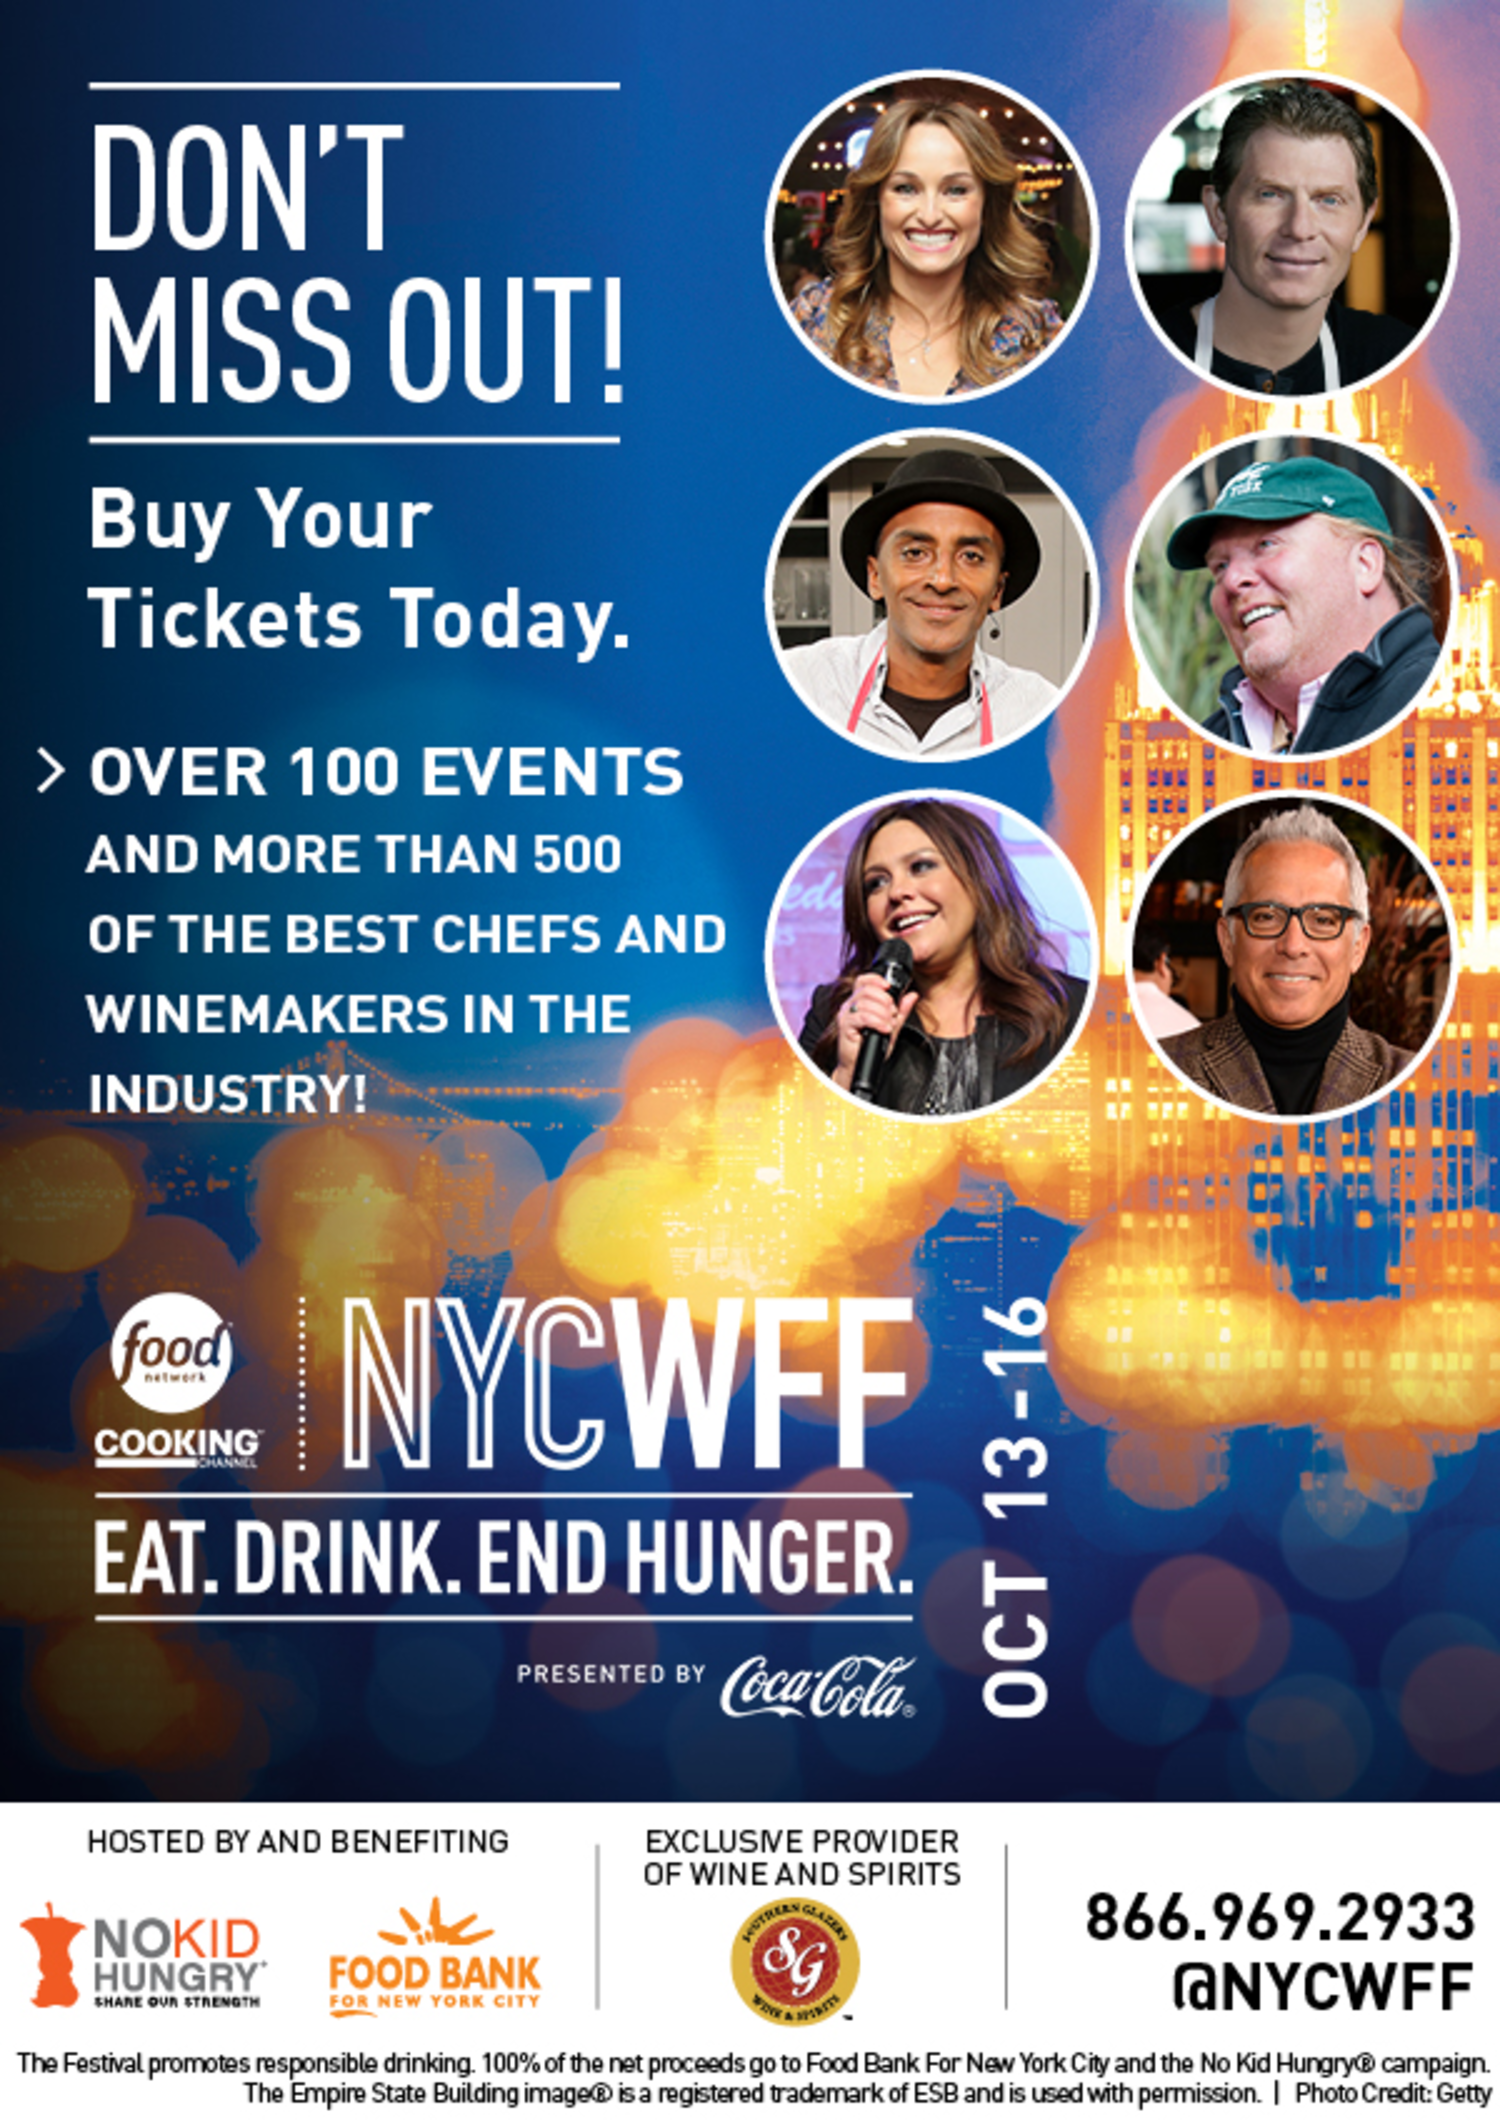 Tickets Still Available for the 2016 New York City Wine and Food Festival